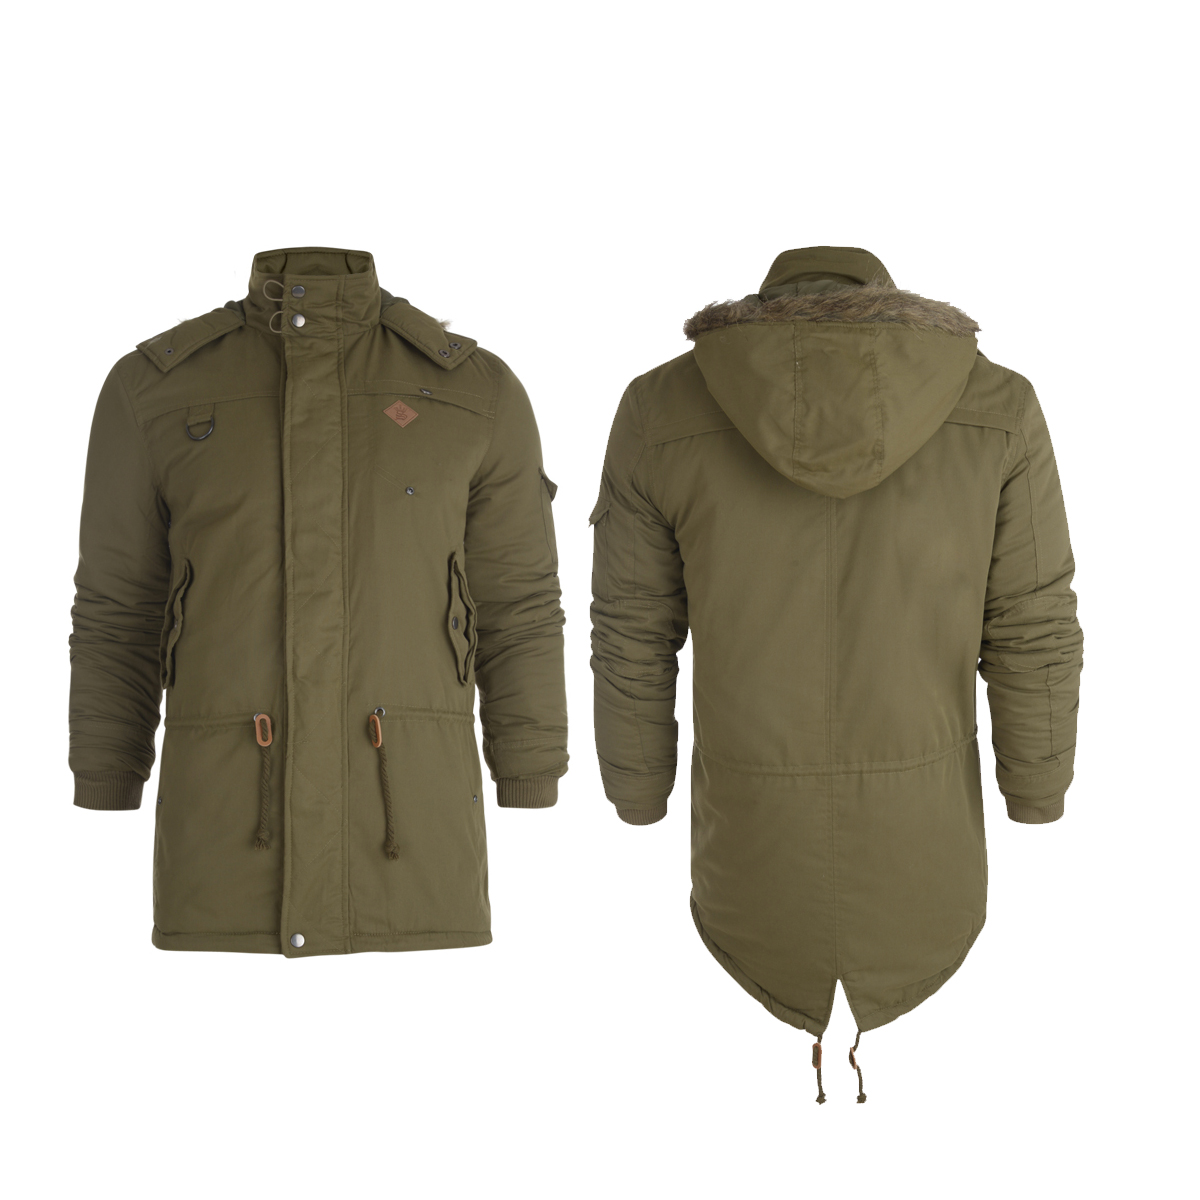 New Mens Soul Star Khaki Green Fishtail Parka Jacket Coat Casual ...